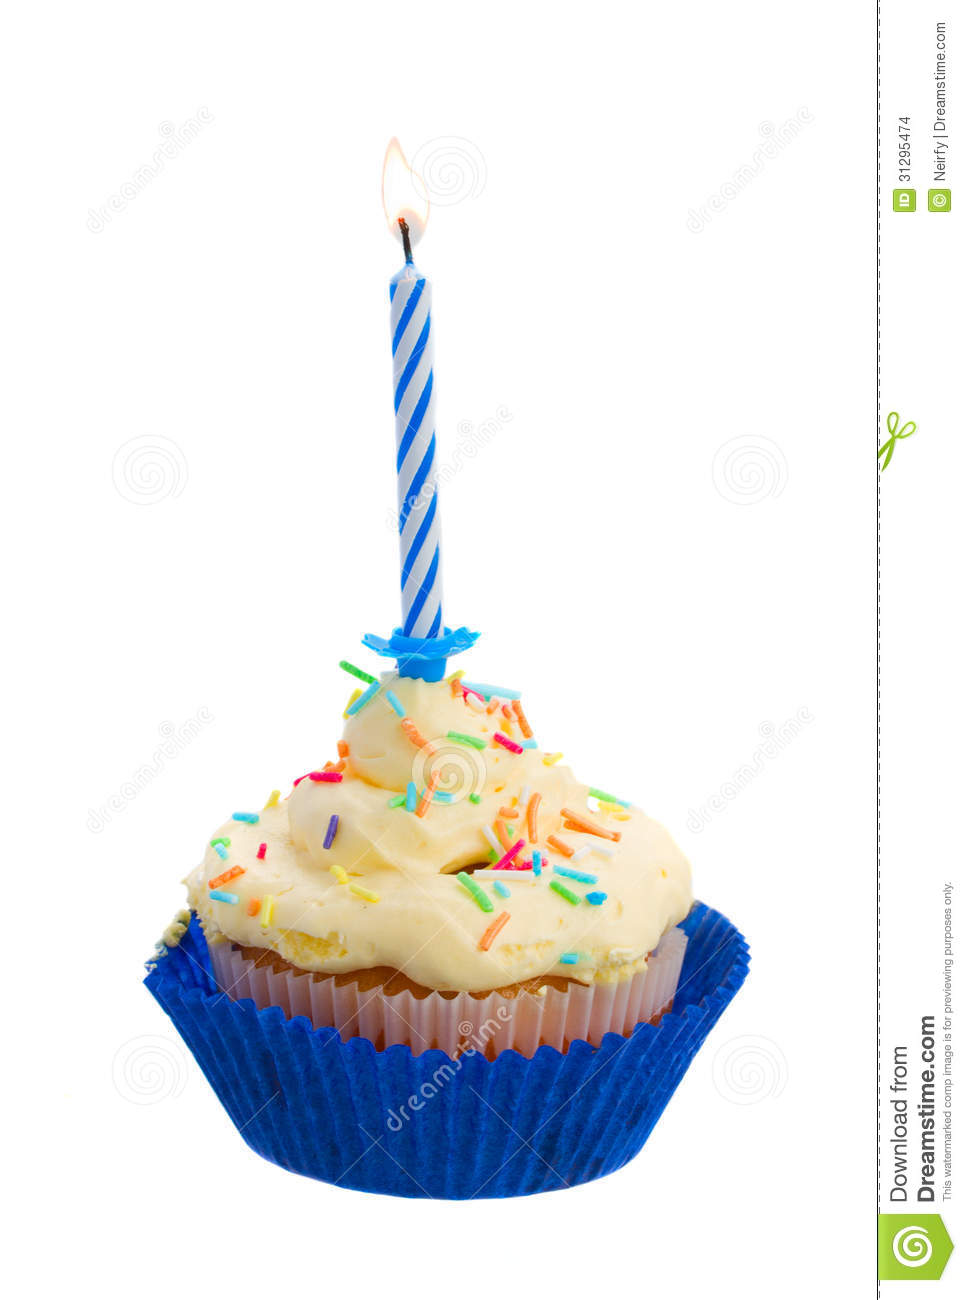 Birthday Cake With One Candle Stock Images - Image: 31295474